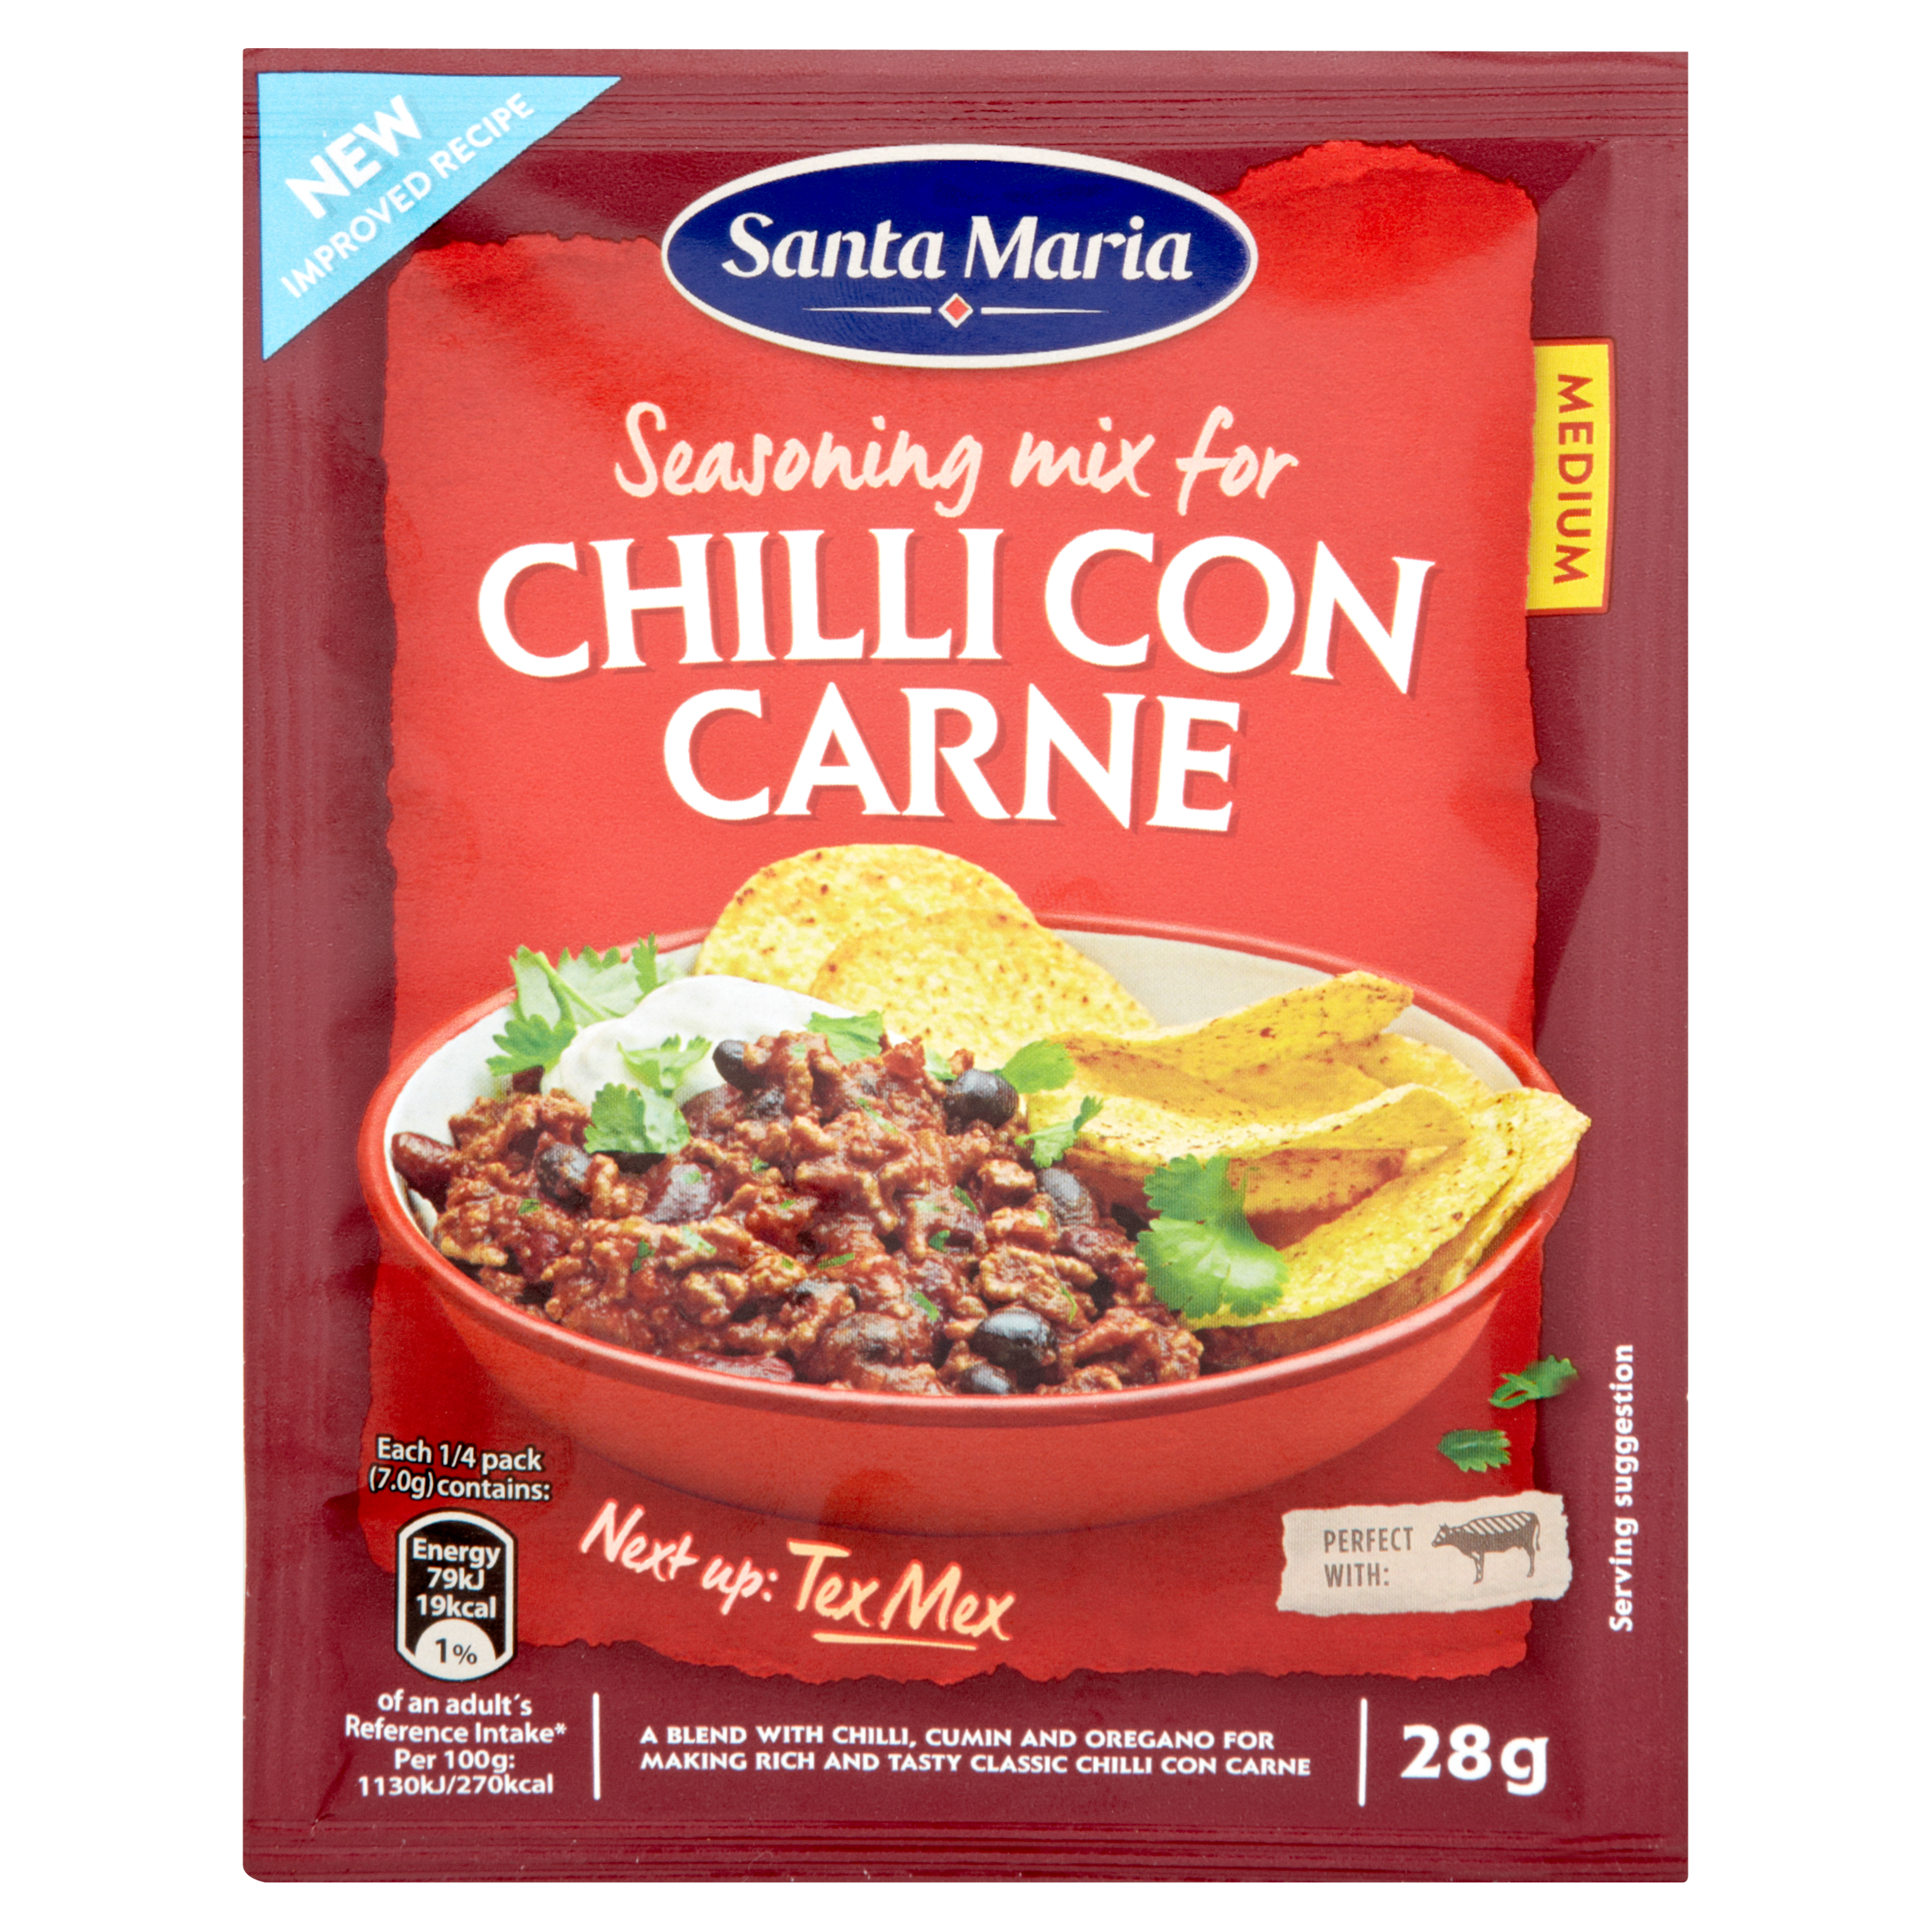 Chilli Con Carne Seasoning Mix